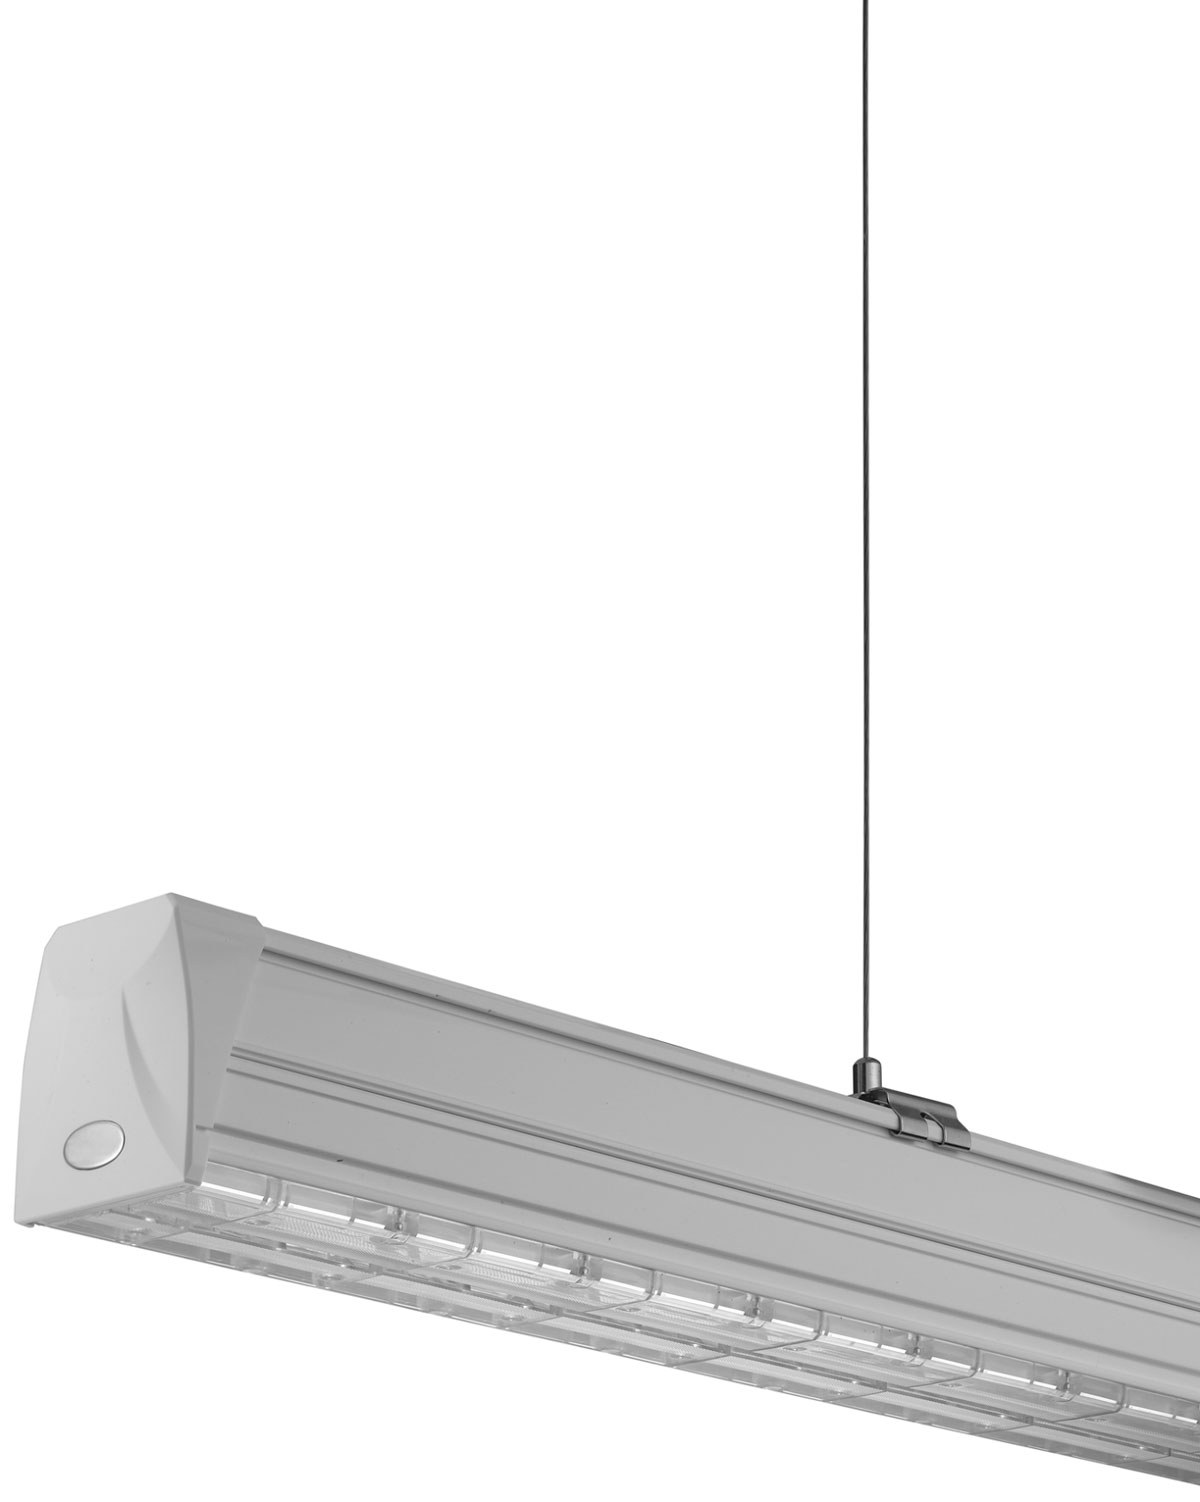 LED Lichtbandsystem das Leuchtenmodul